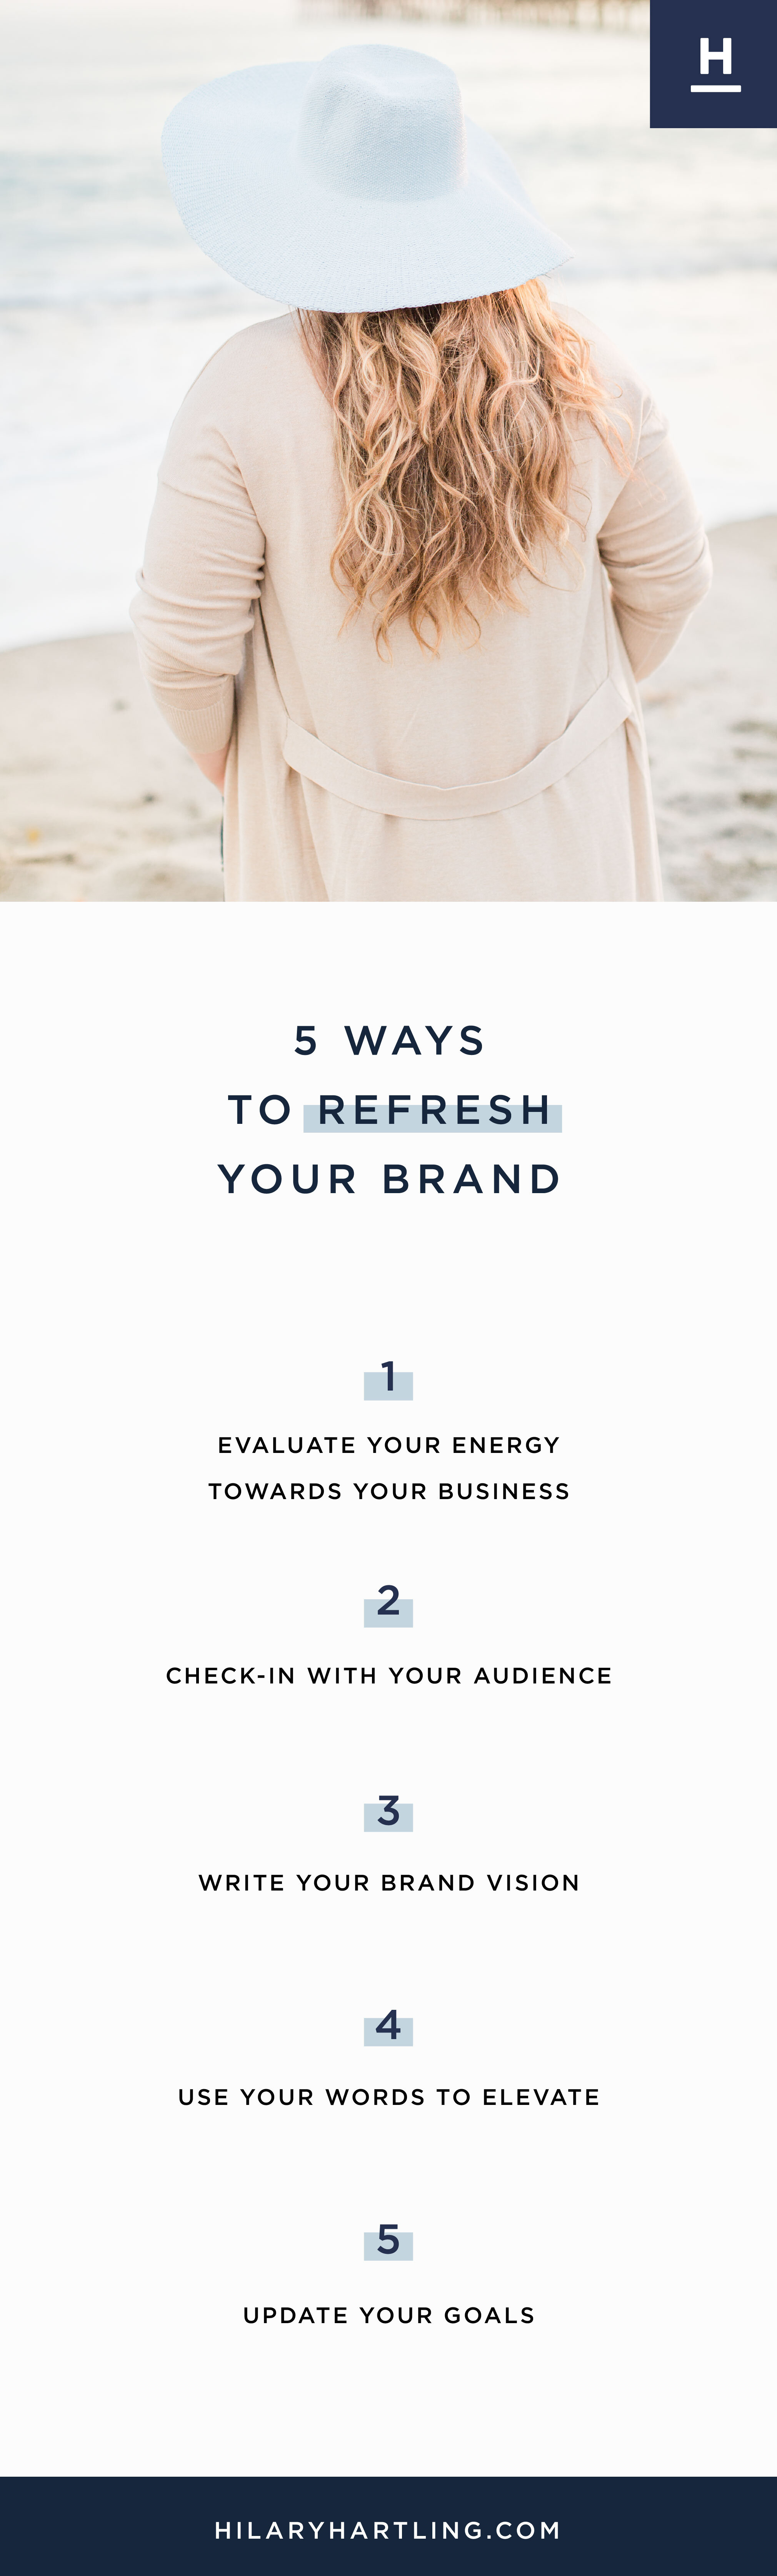 5-Ways--To-Refresh--Your-Brand2.jpg